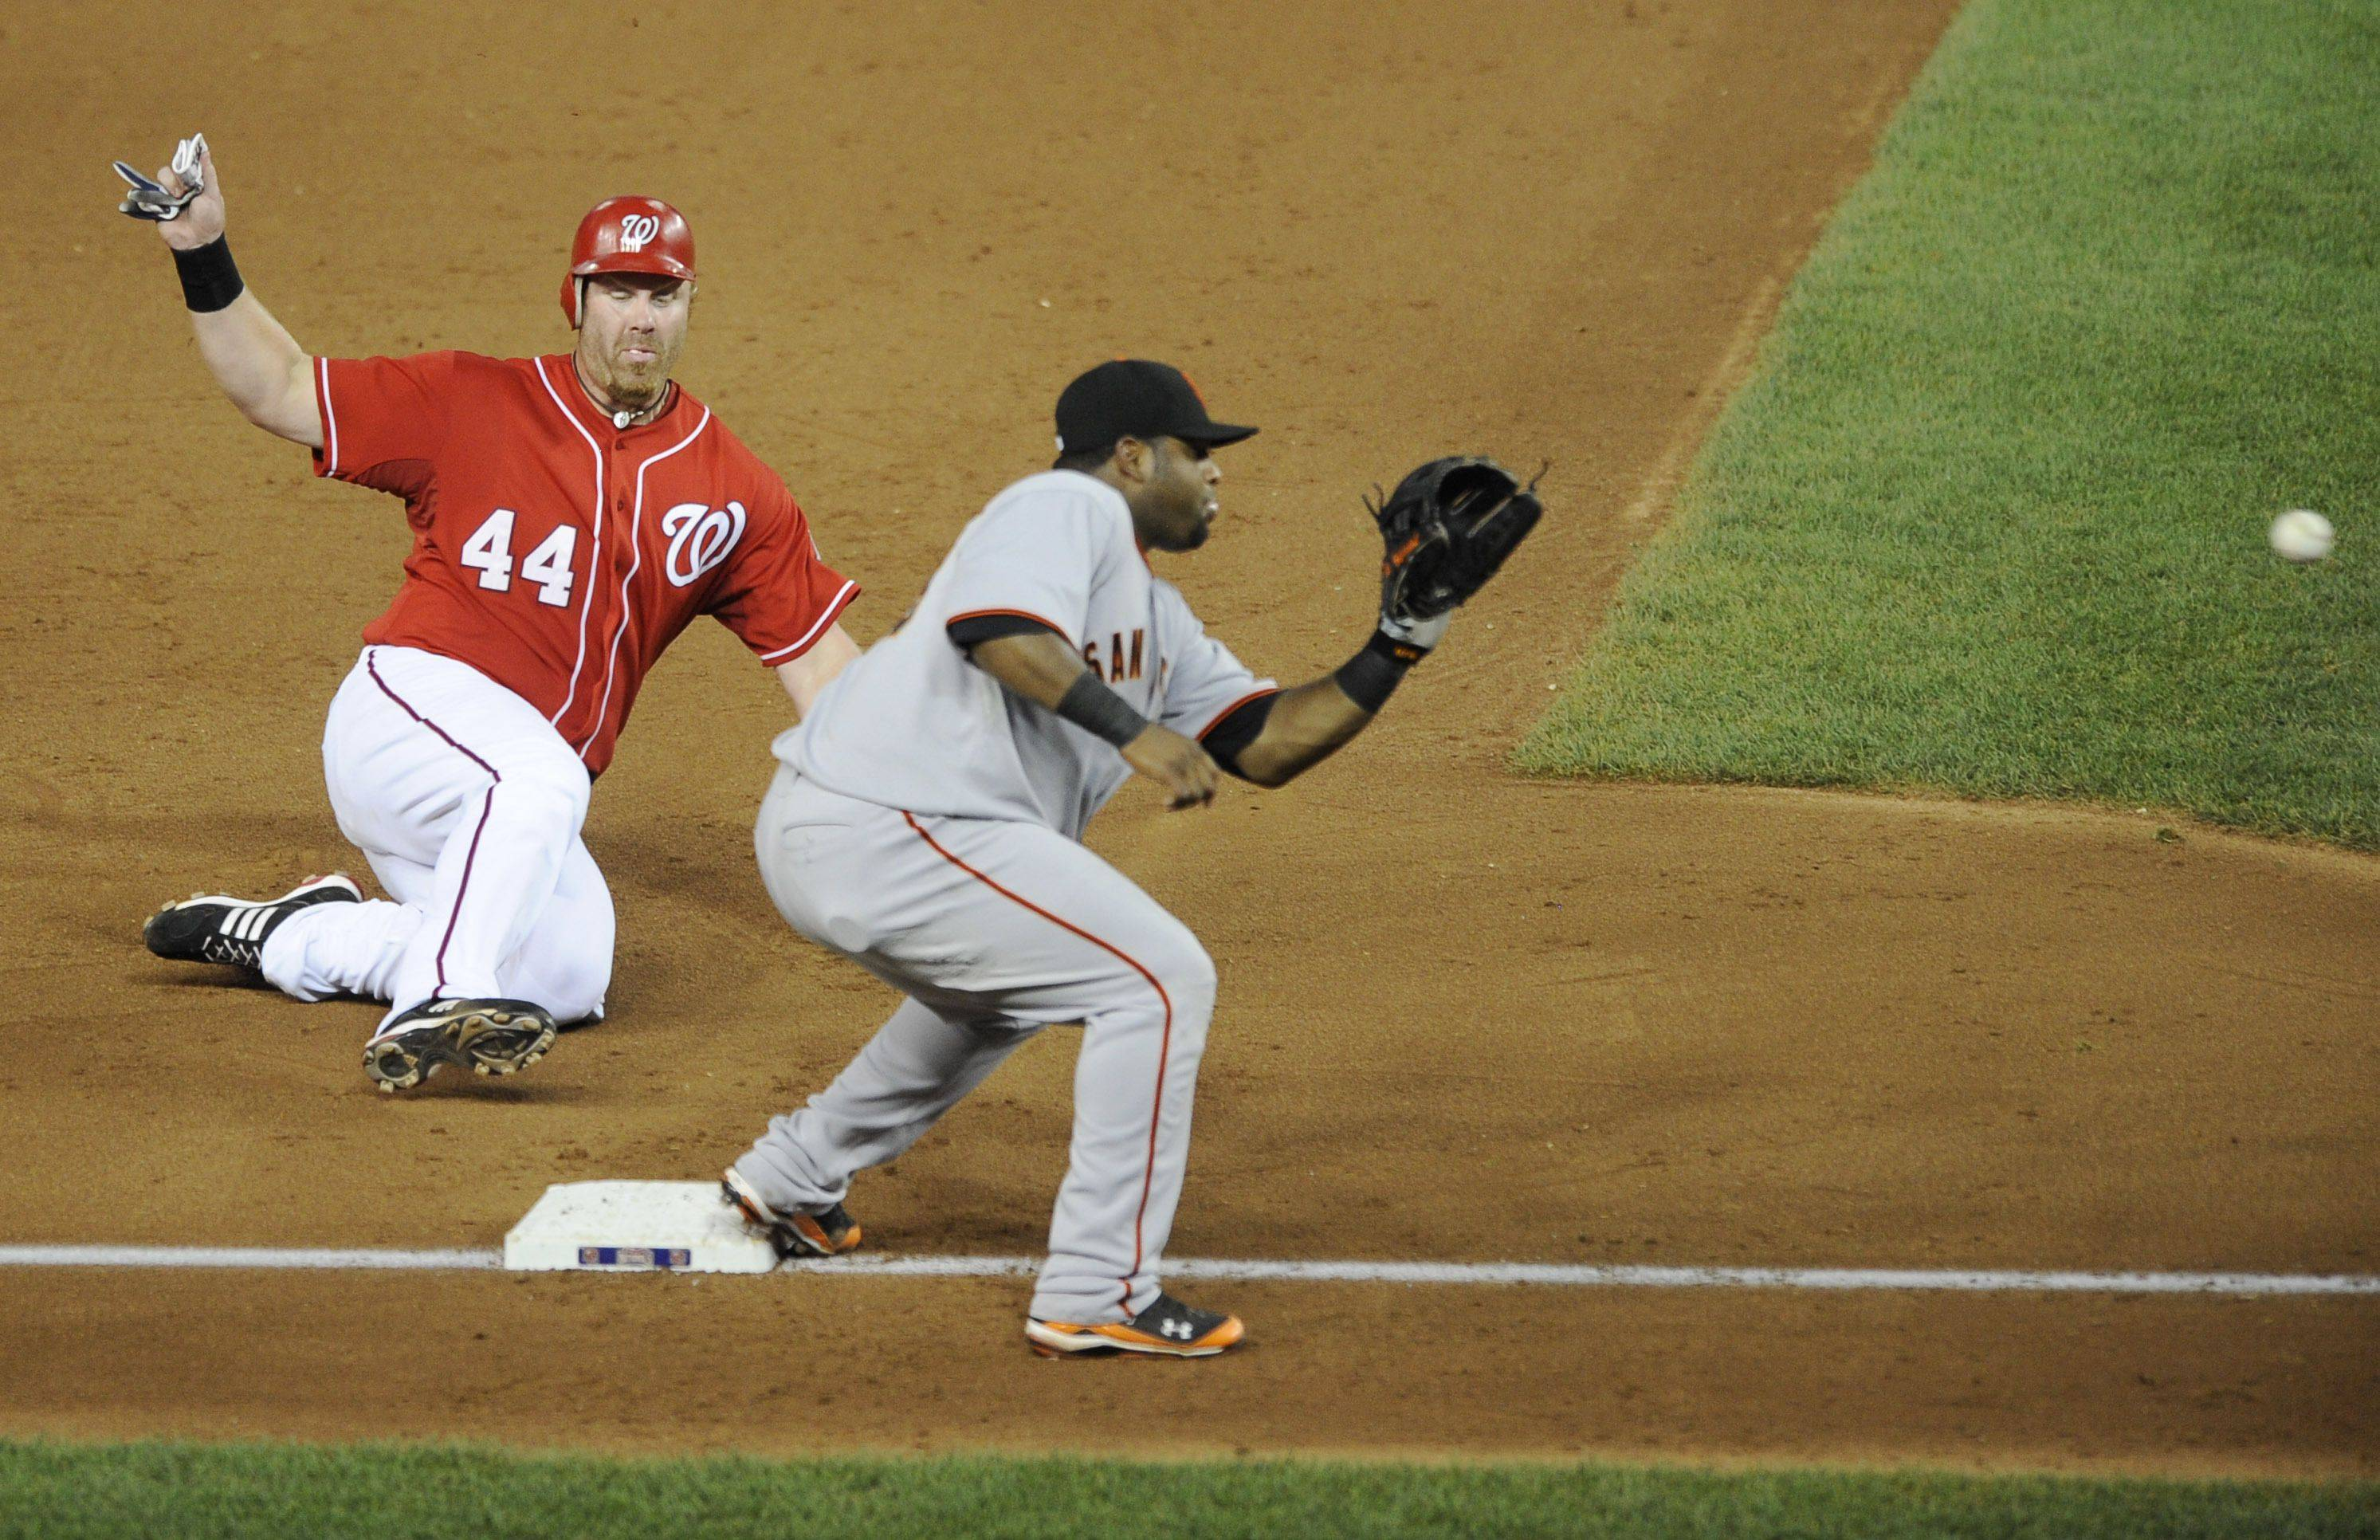 Washington Nationals first baseman Adam Dunn (44) slides safely into third on a wild pitch as San Francisco Giants third baseman Pablo Sandoval, right, waits for the ball.